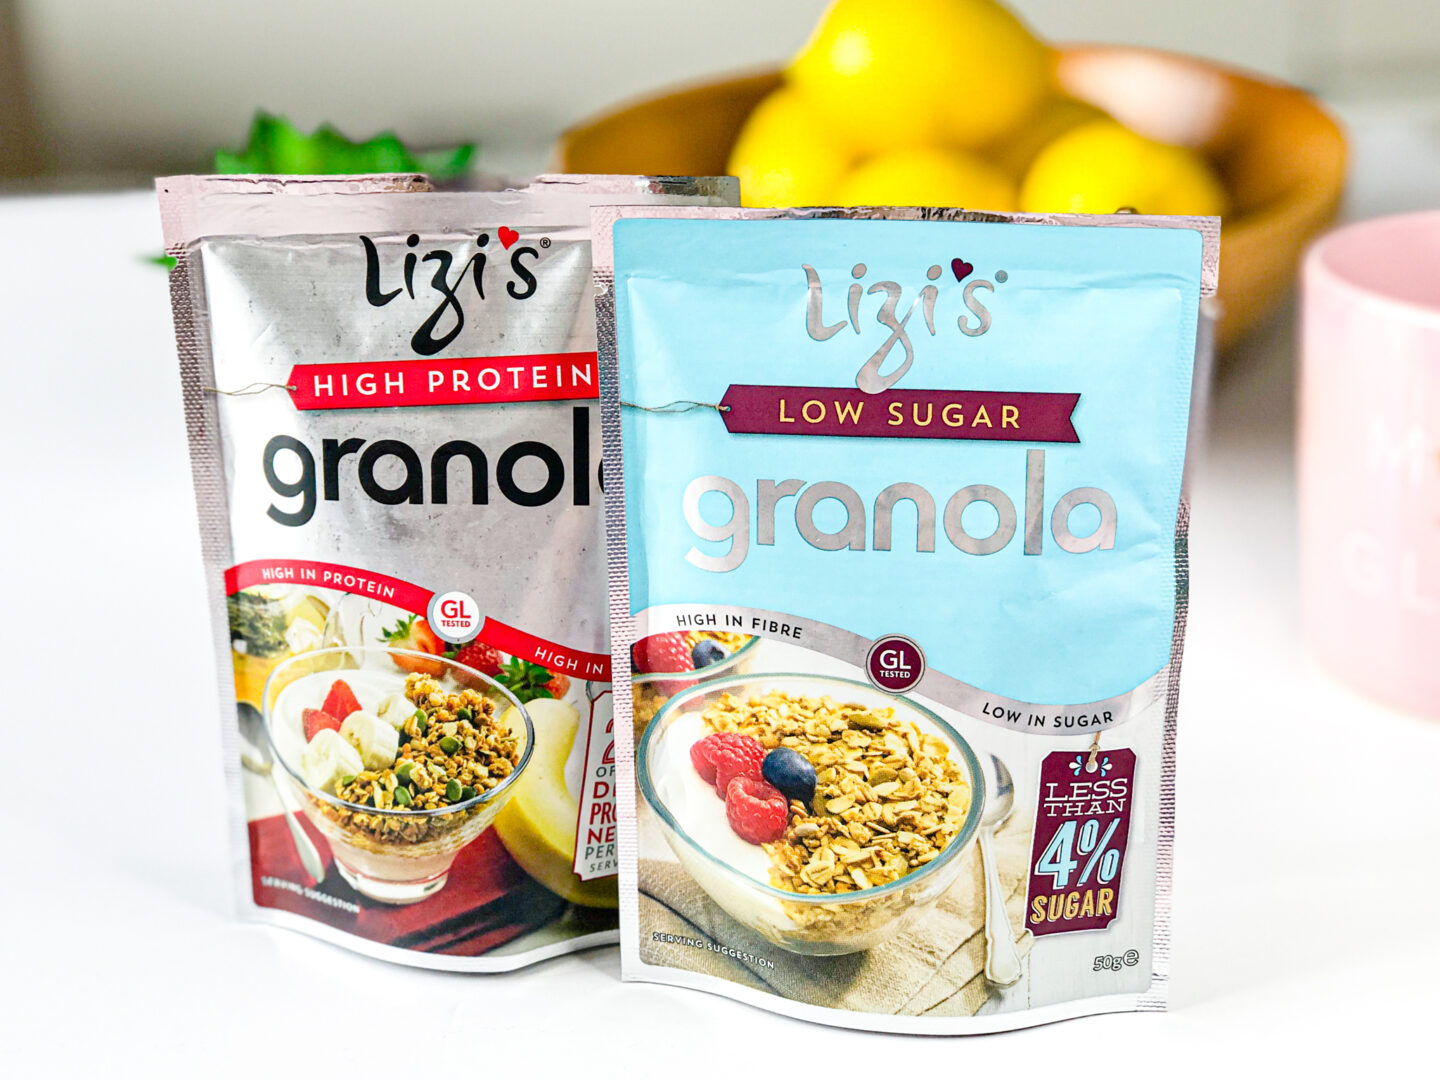 Lizi's High Protein Granola / Low Sugar Granola - June 2020 Degusta Box